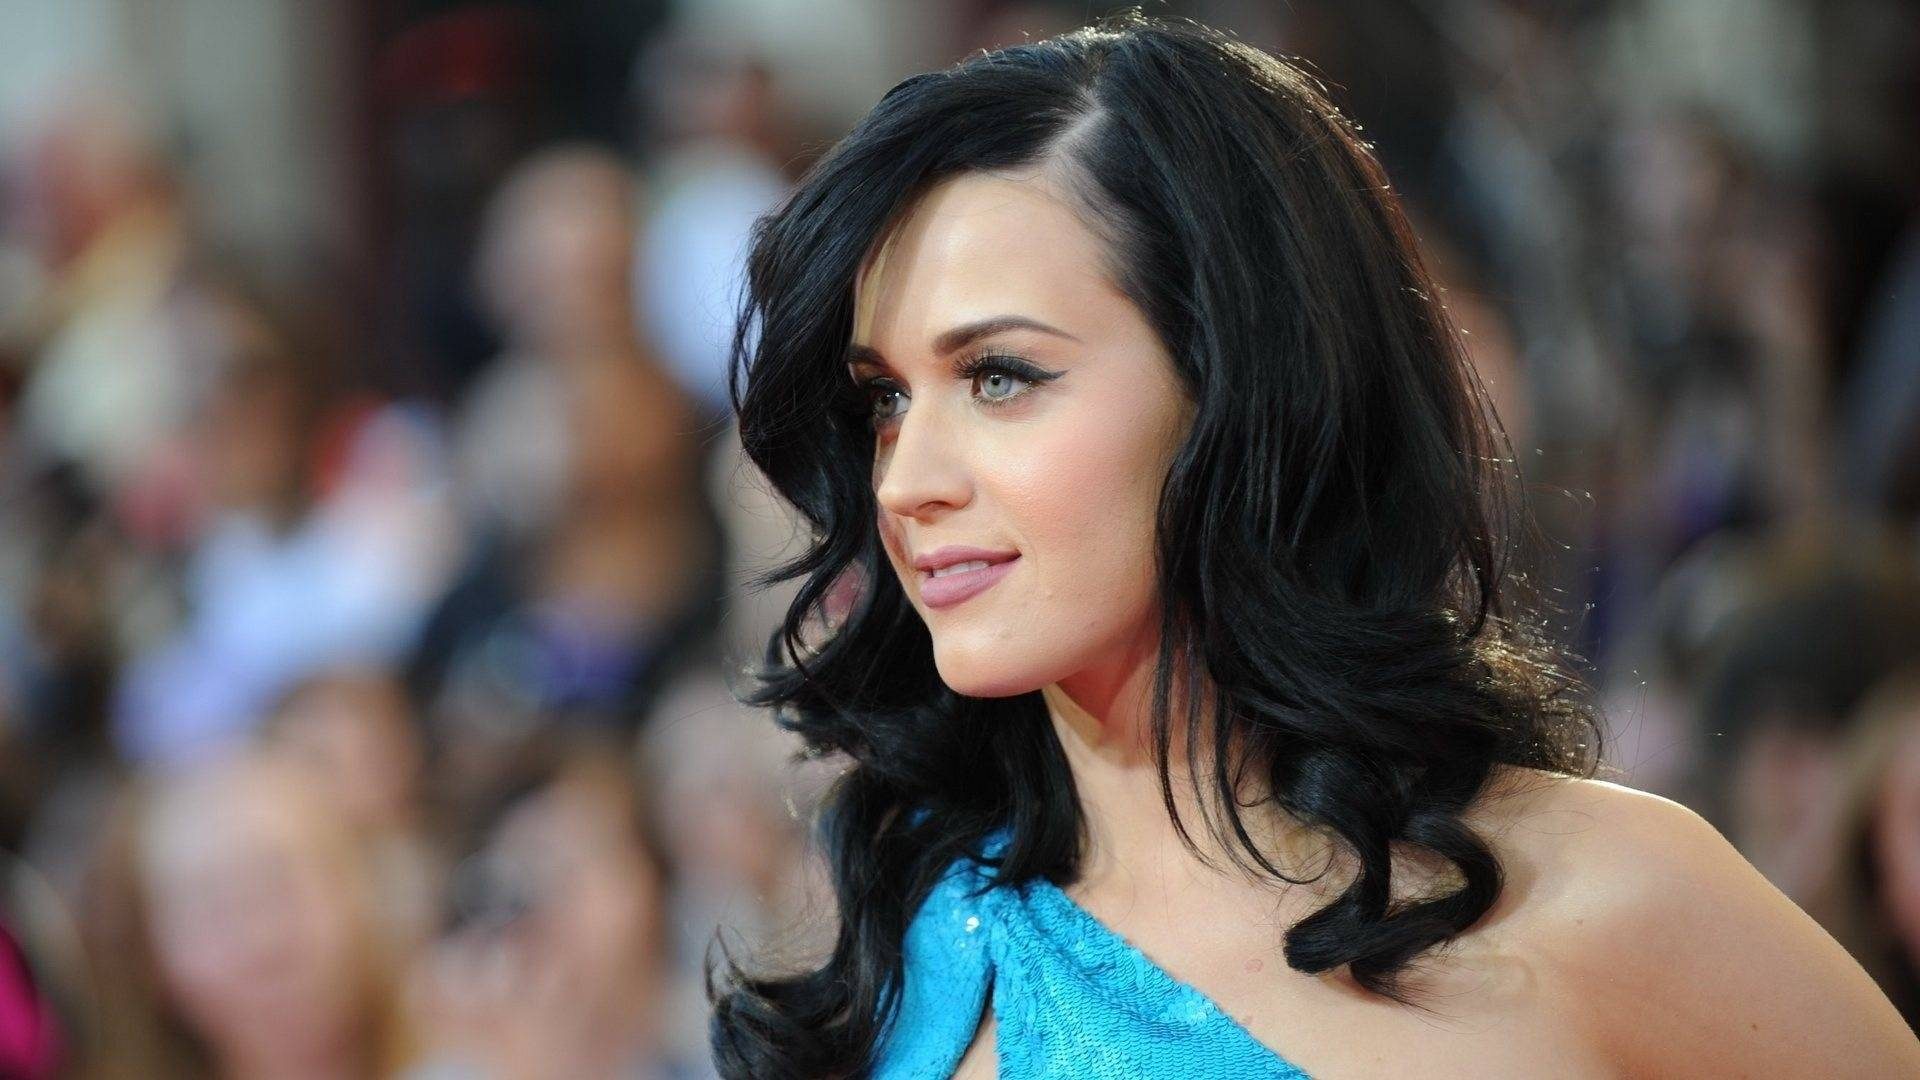 Katy Perry HD Background